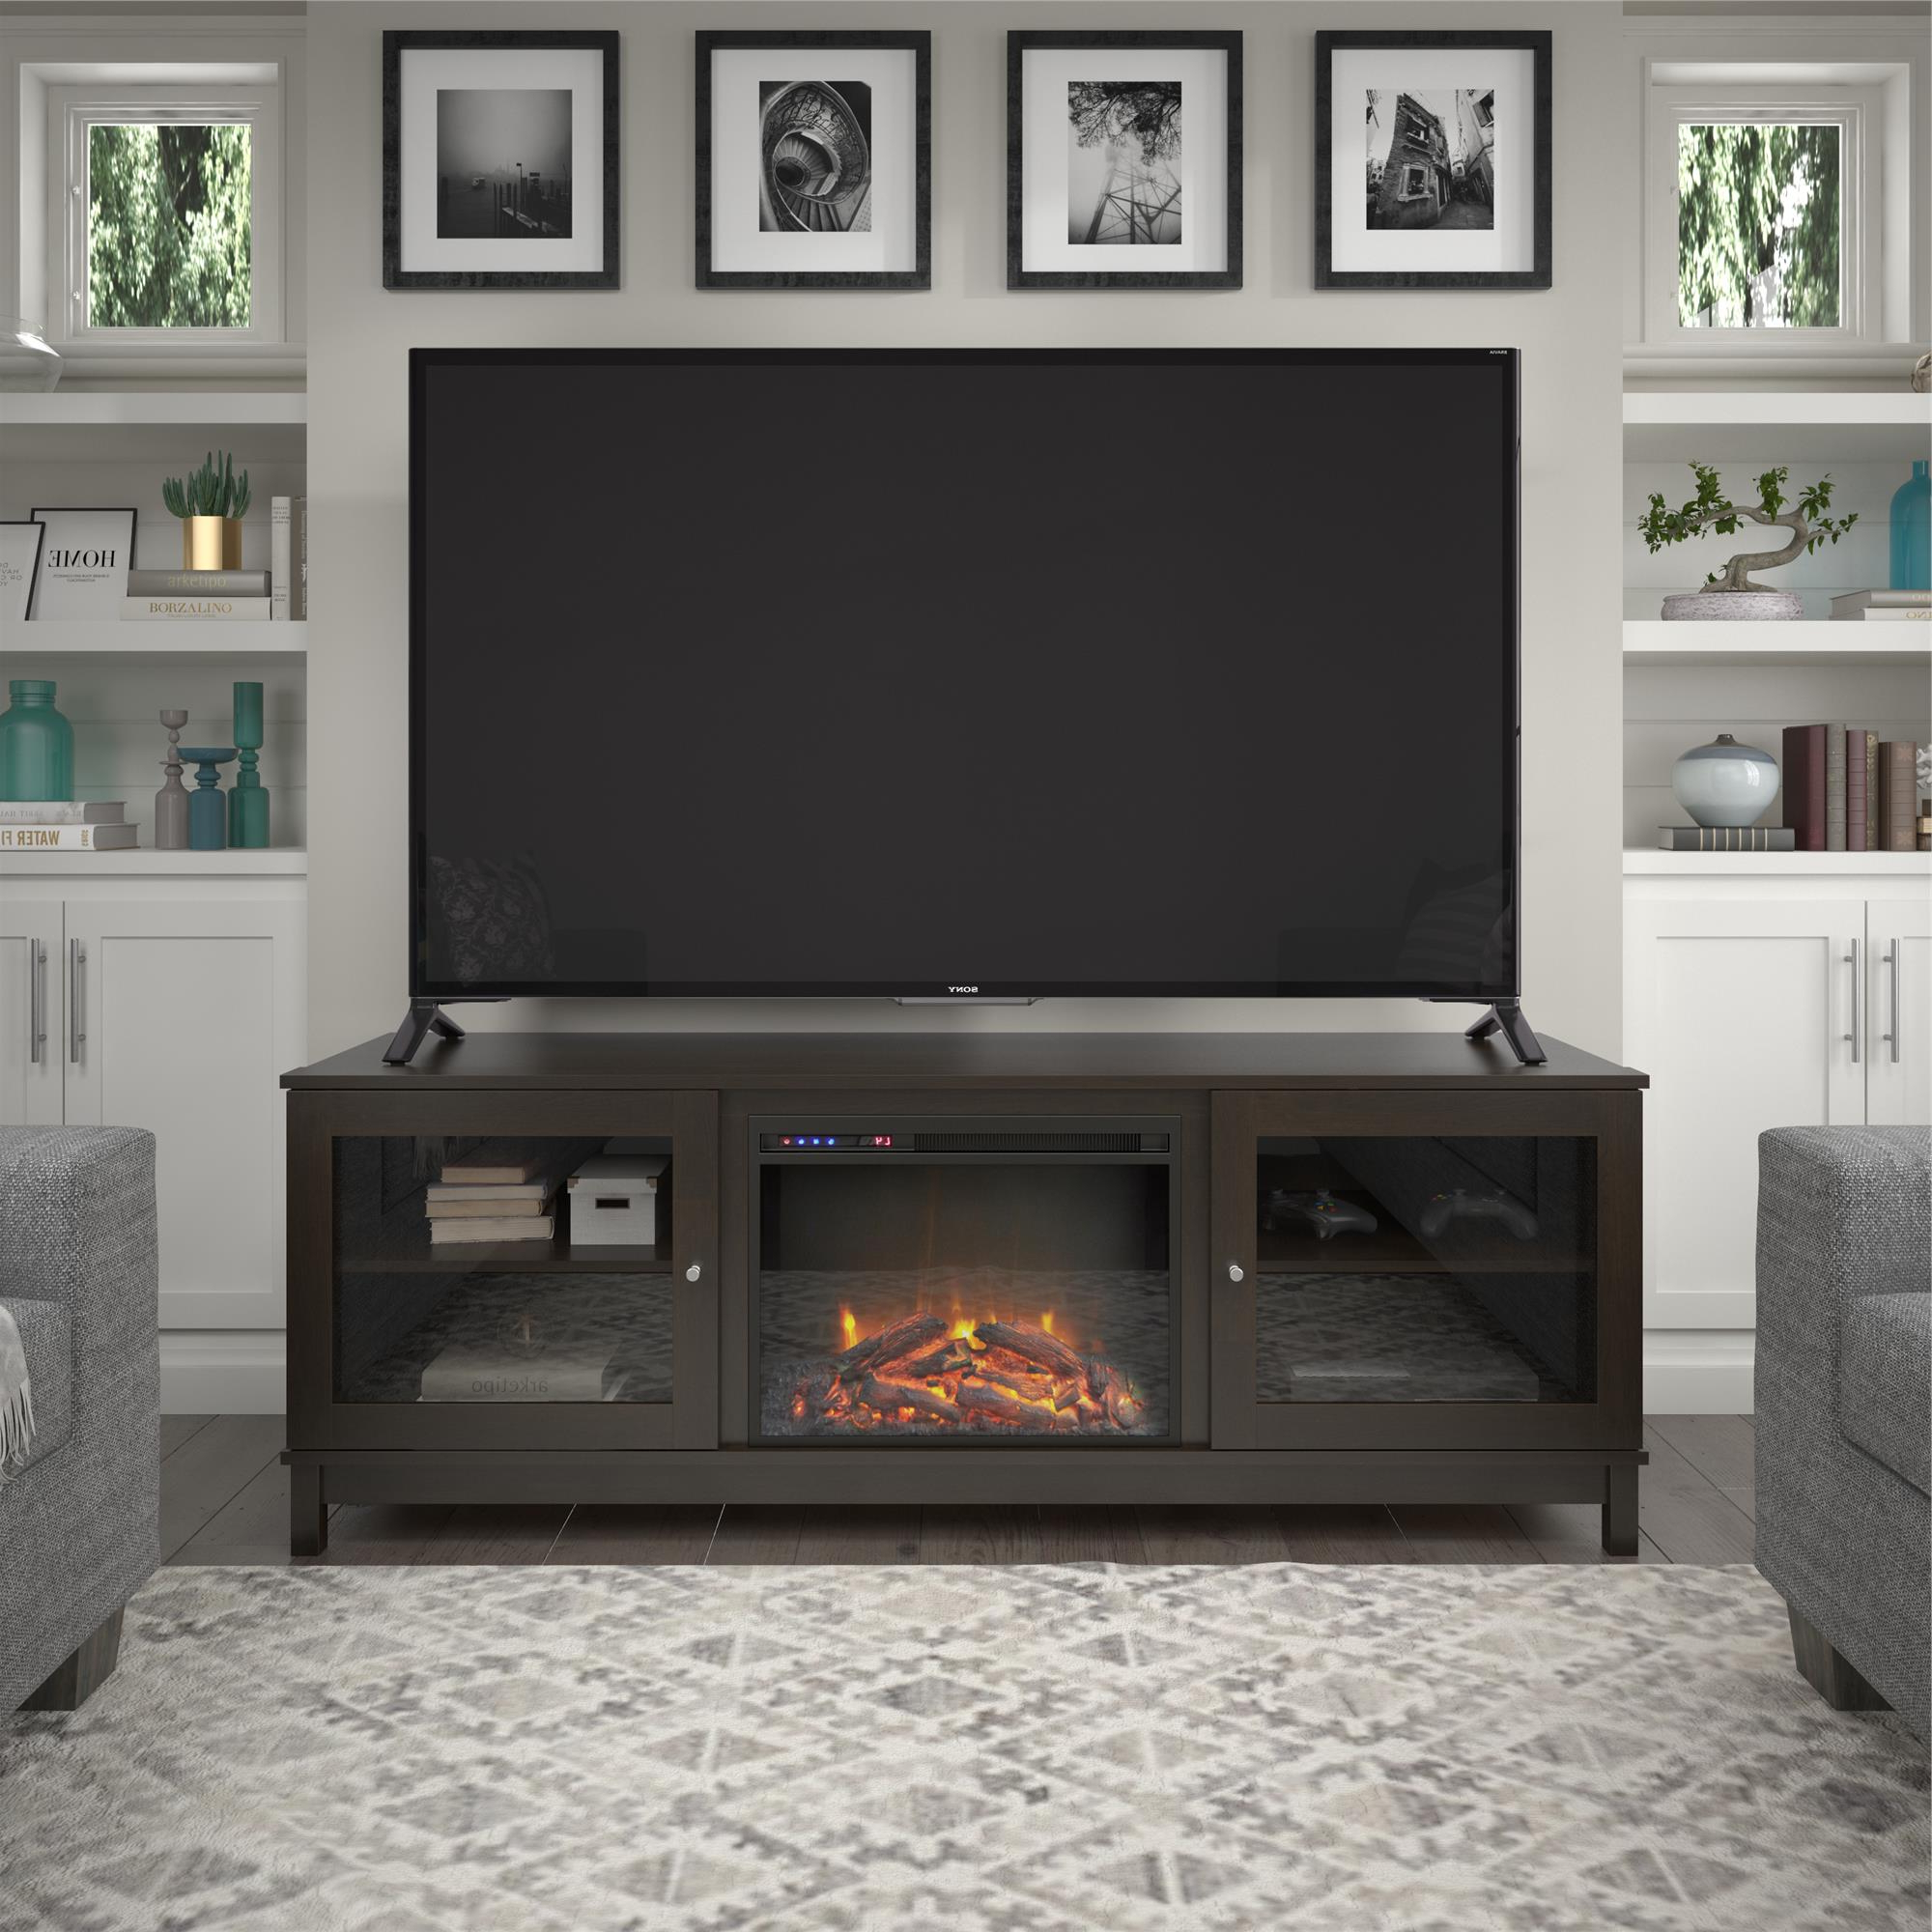 """Ameriwood Home Swanson Fireplace Tv Stand For Tvs Up To 70 Regarding Mainor Tv Stands For Tvs Up To 70"""" (View 6 of 20)"""